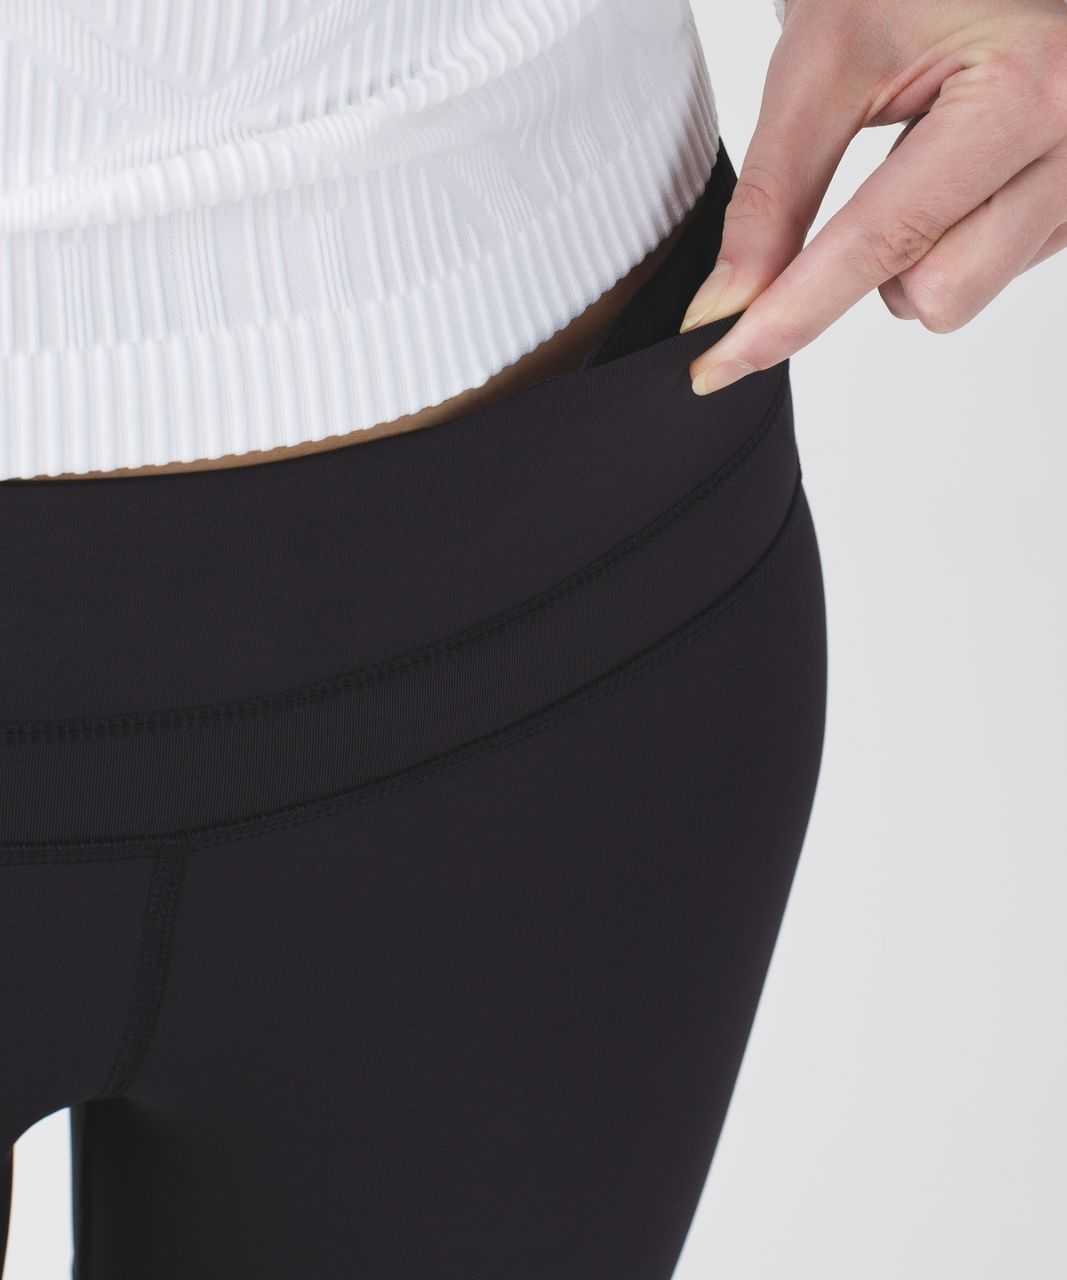 Lululemon Run: Inspire Crop II *Block-It Pocket - Black